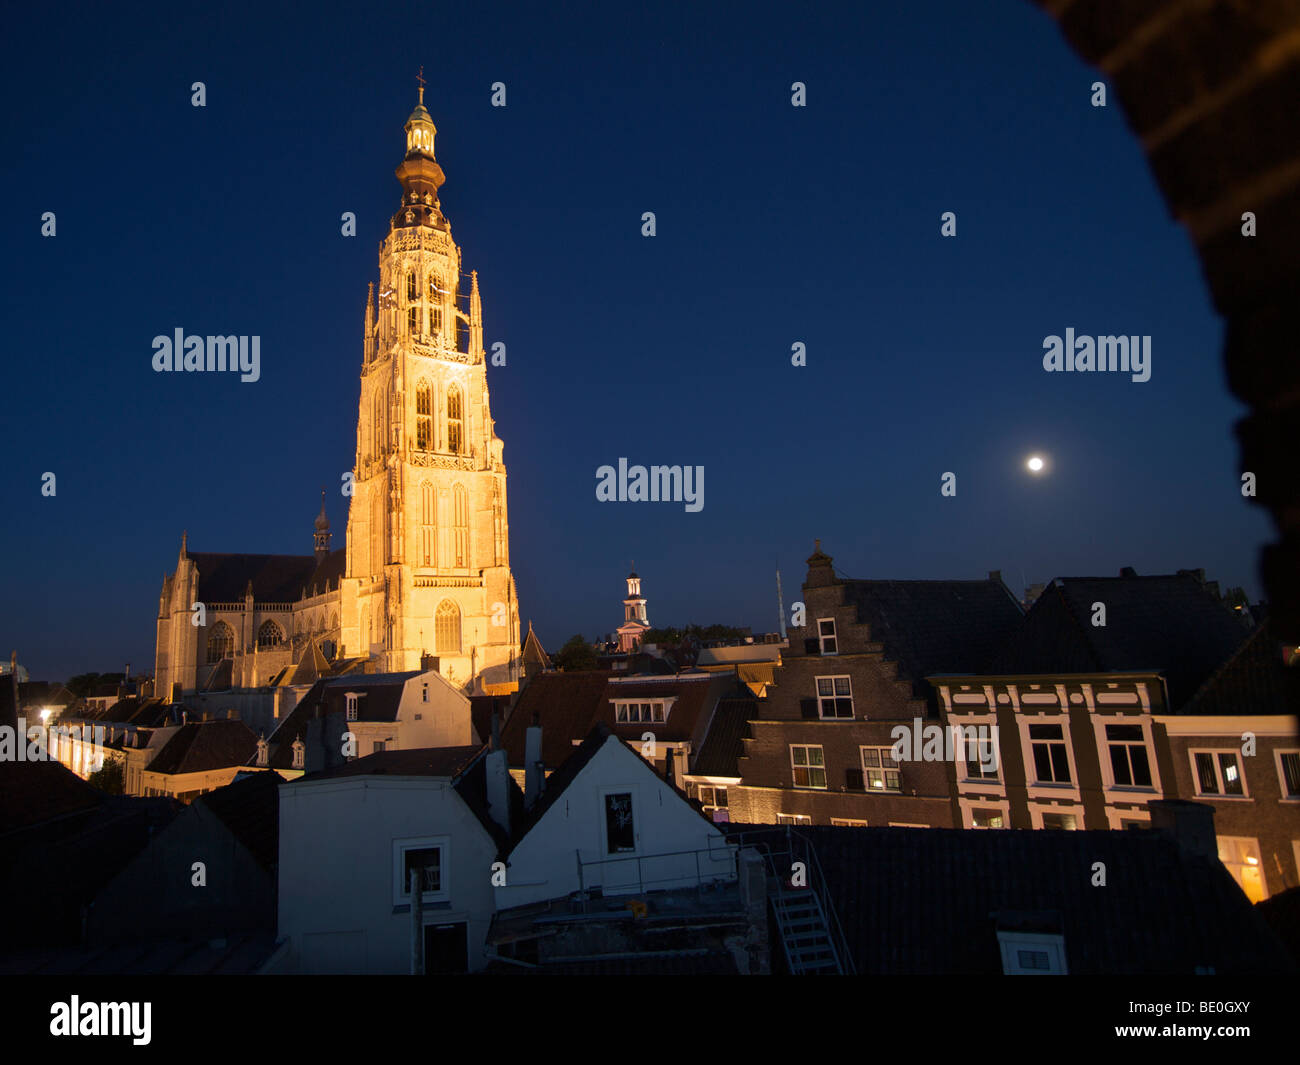 The Grote Kerk or Grand Church of Breda, Noord Brabant, the Netherlands, is illuminated at night - Stock Image